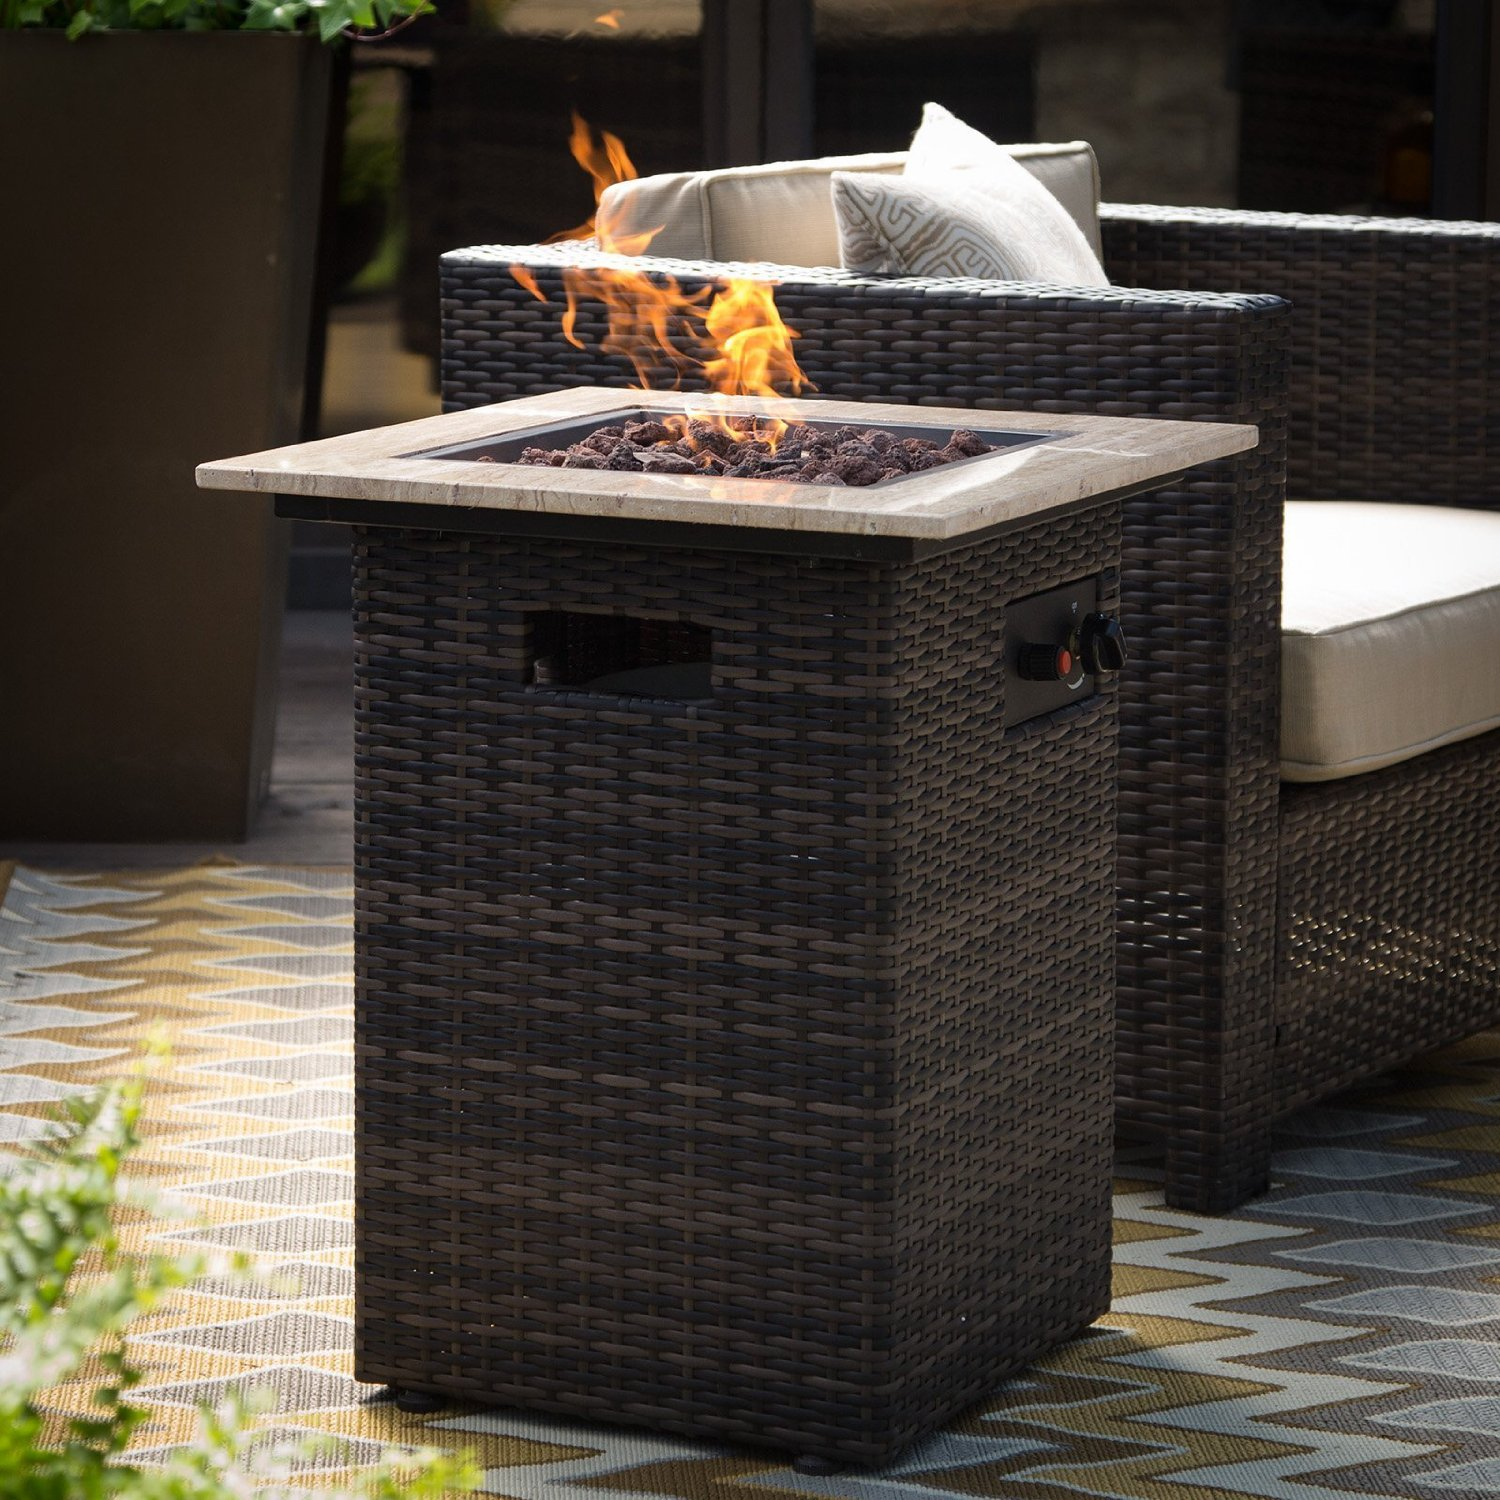 Patio Fire Pit,Steel Fire Pit,Red Ember Fire Pits Outdoor,Brown Square Pavani Fire Column